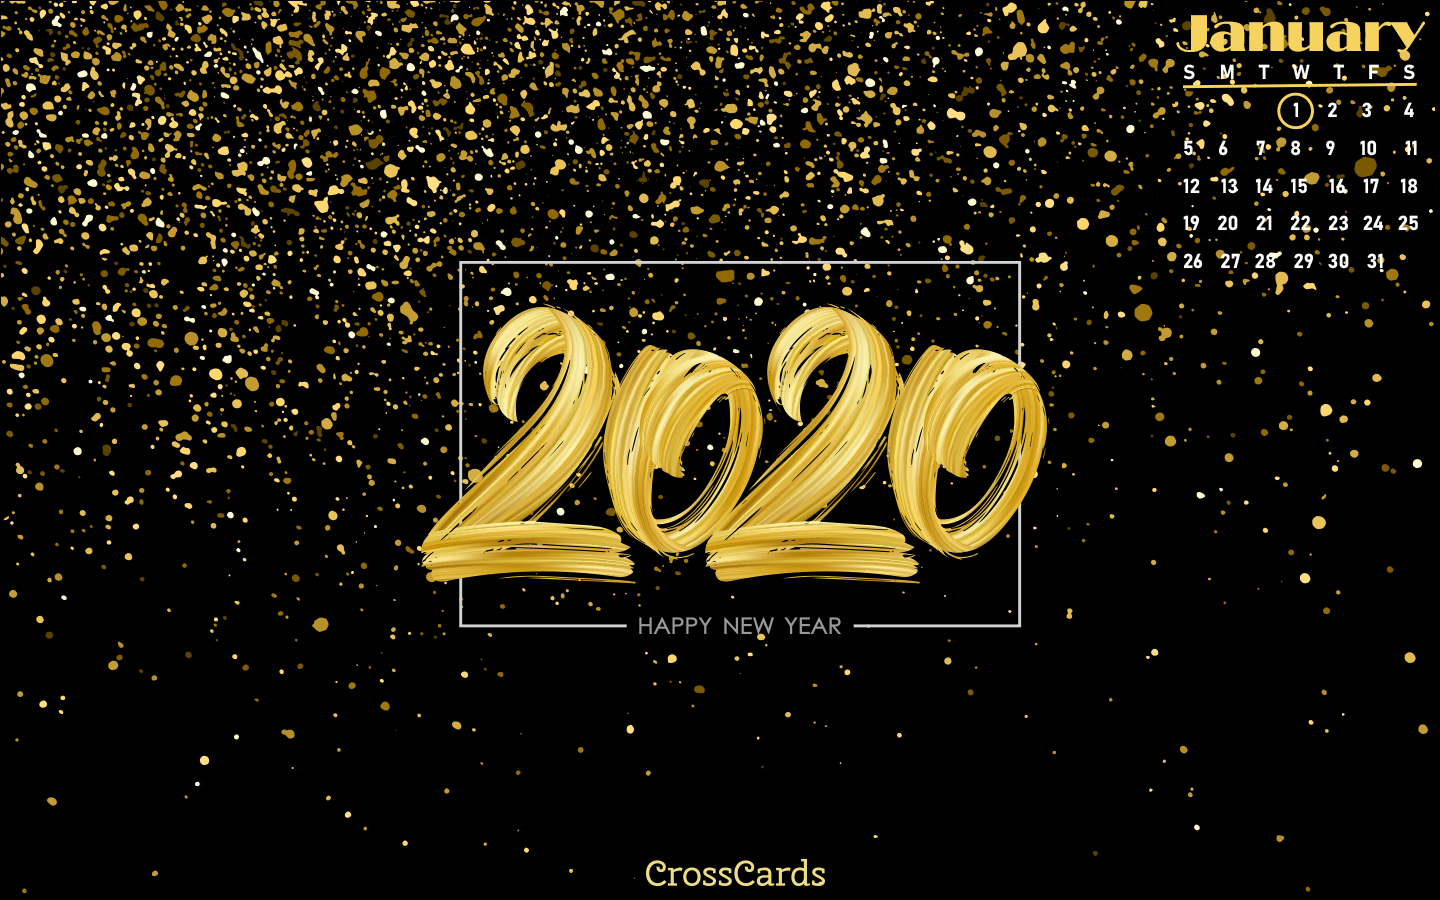 January 2020 - New Year mobile phone wallpaper